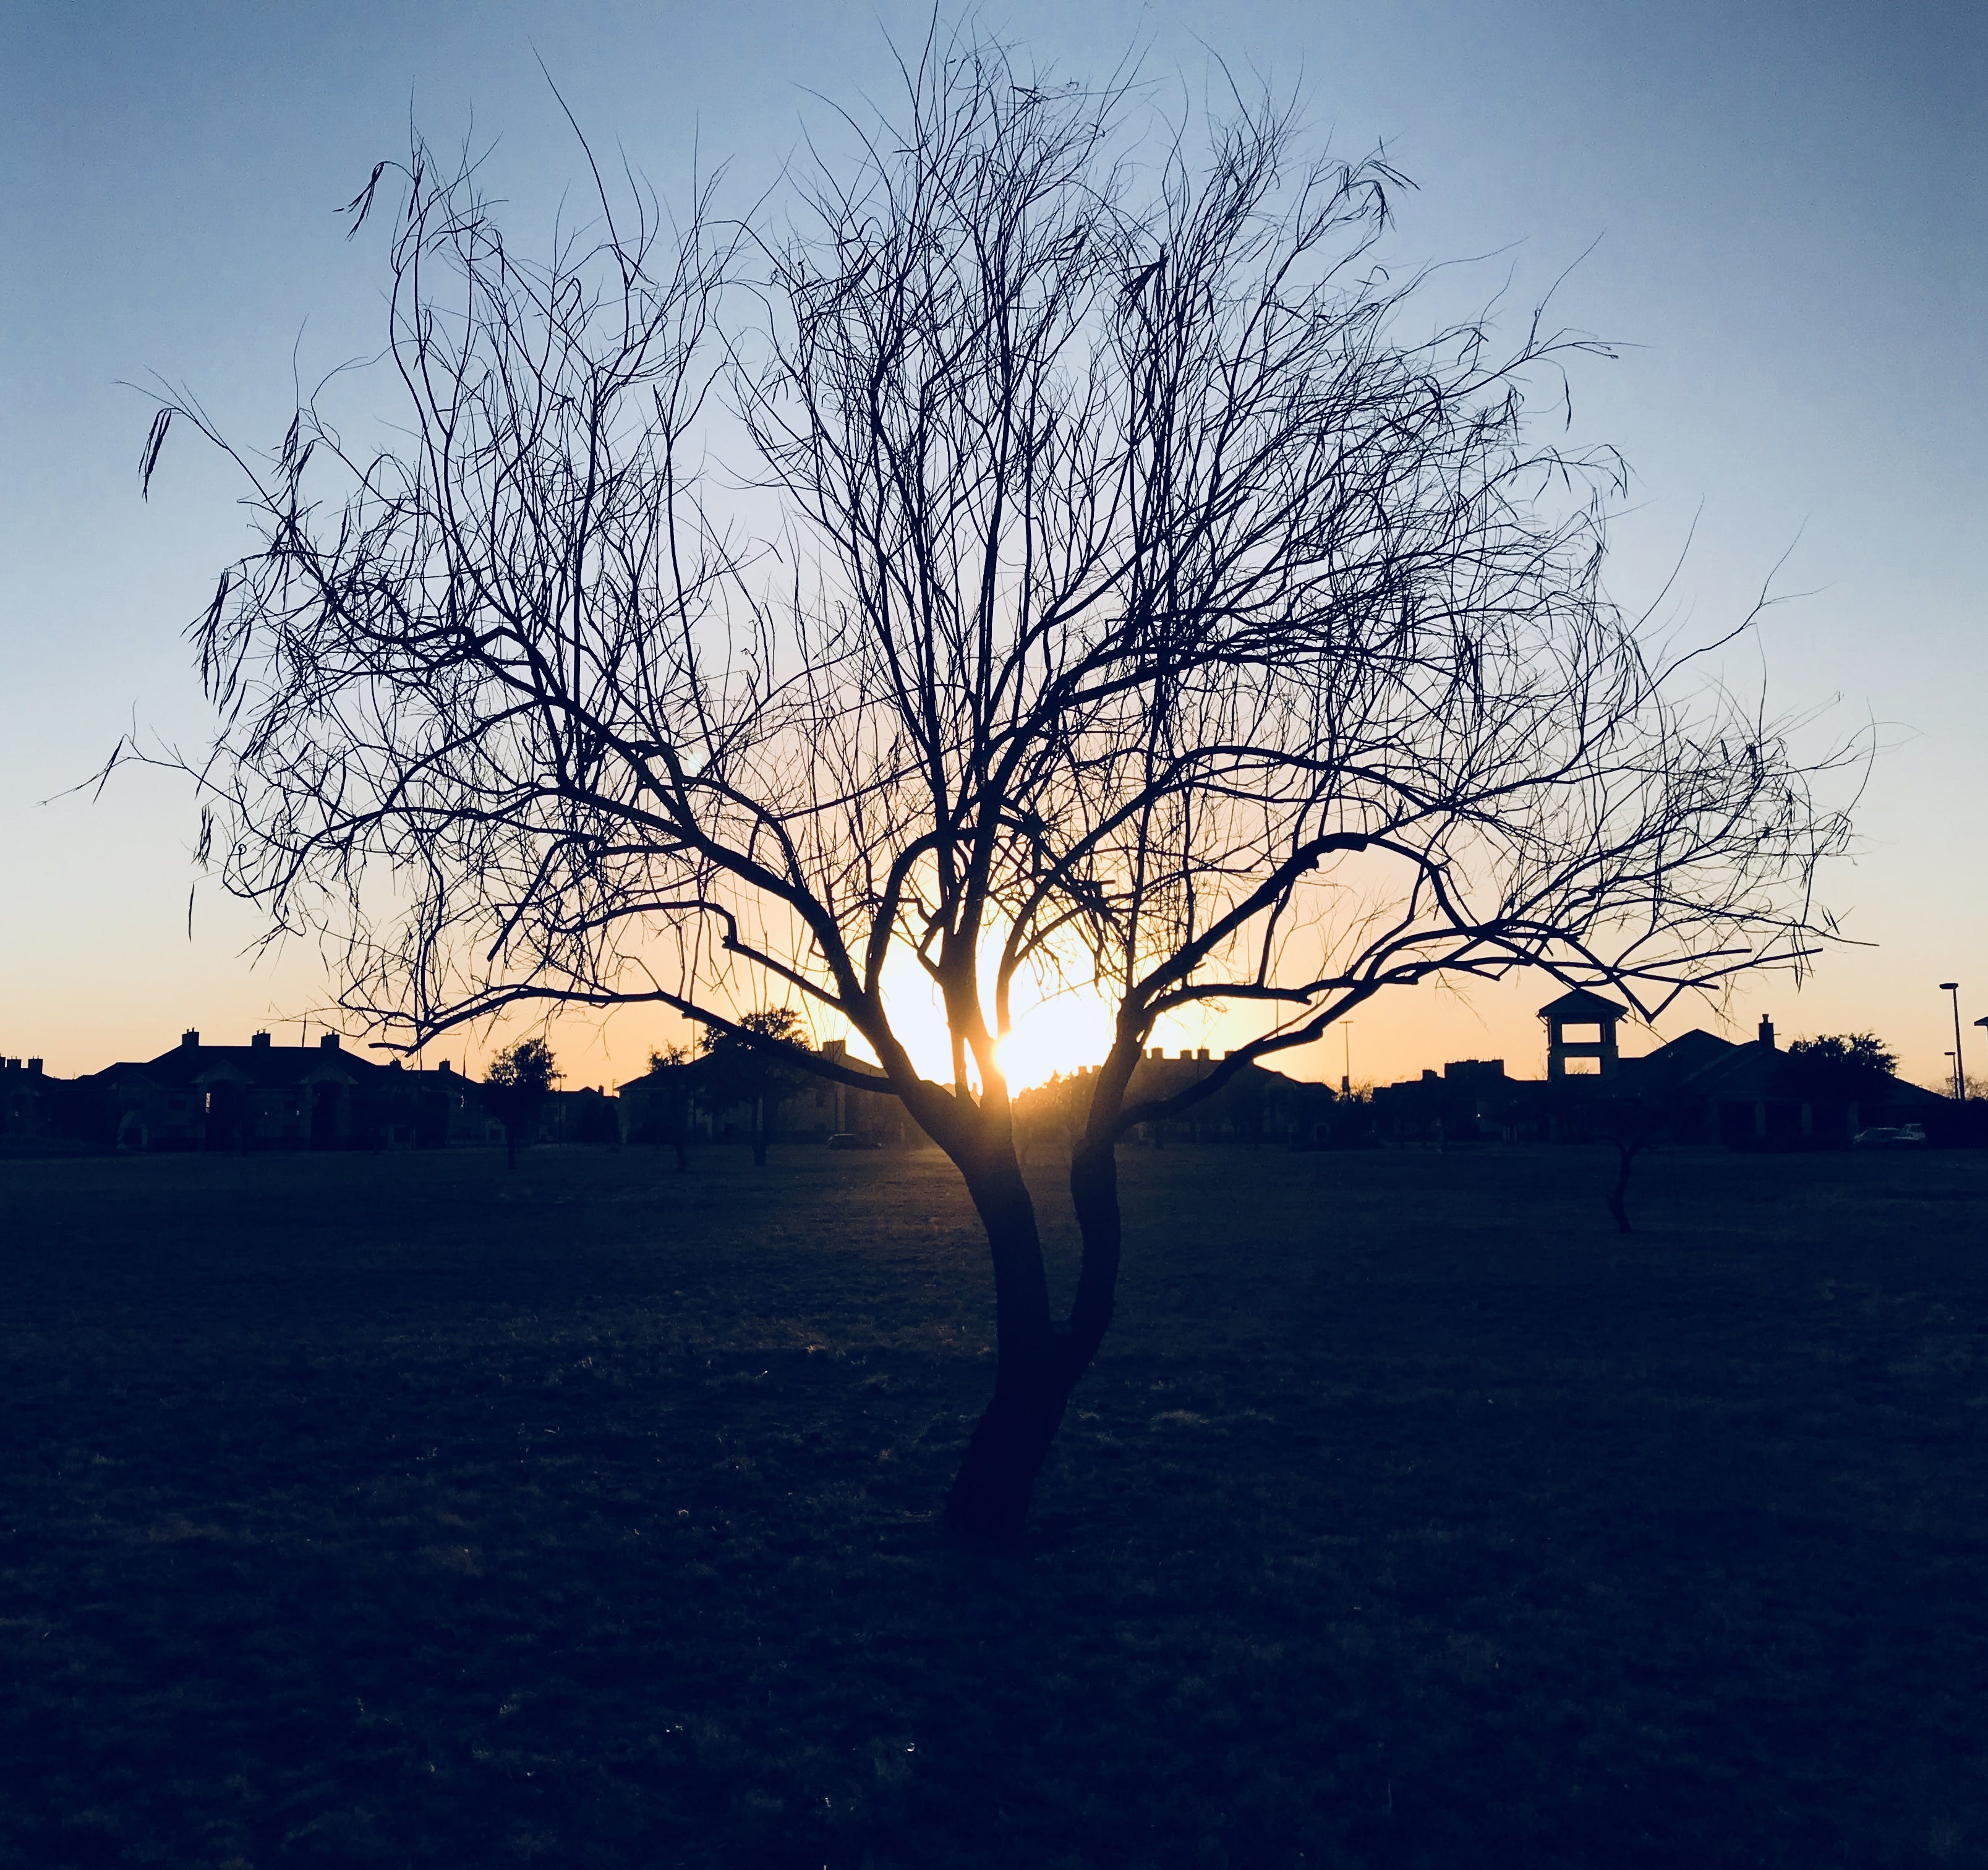 Silhouette of Bare Tree during Sunset